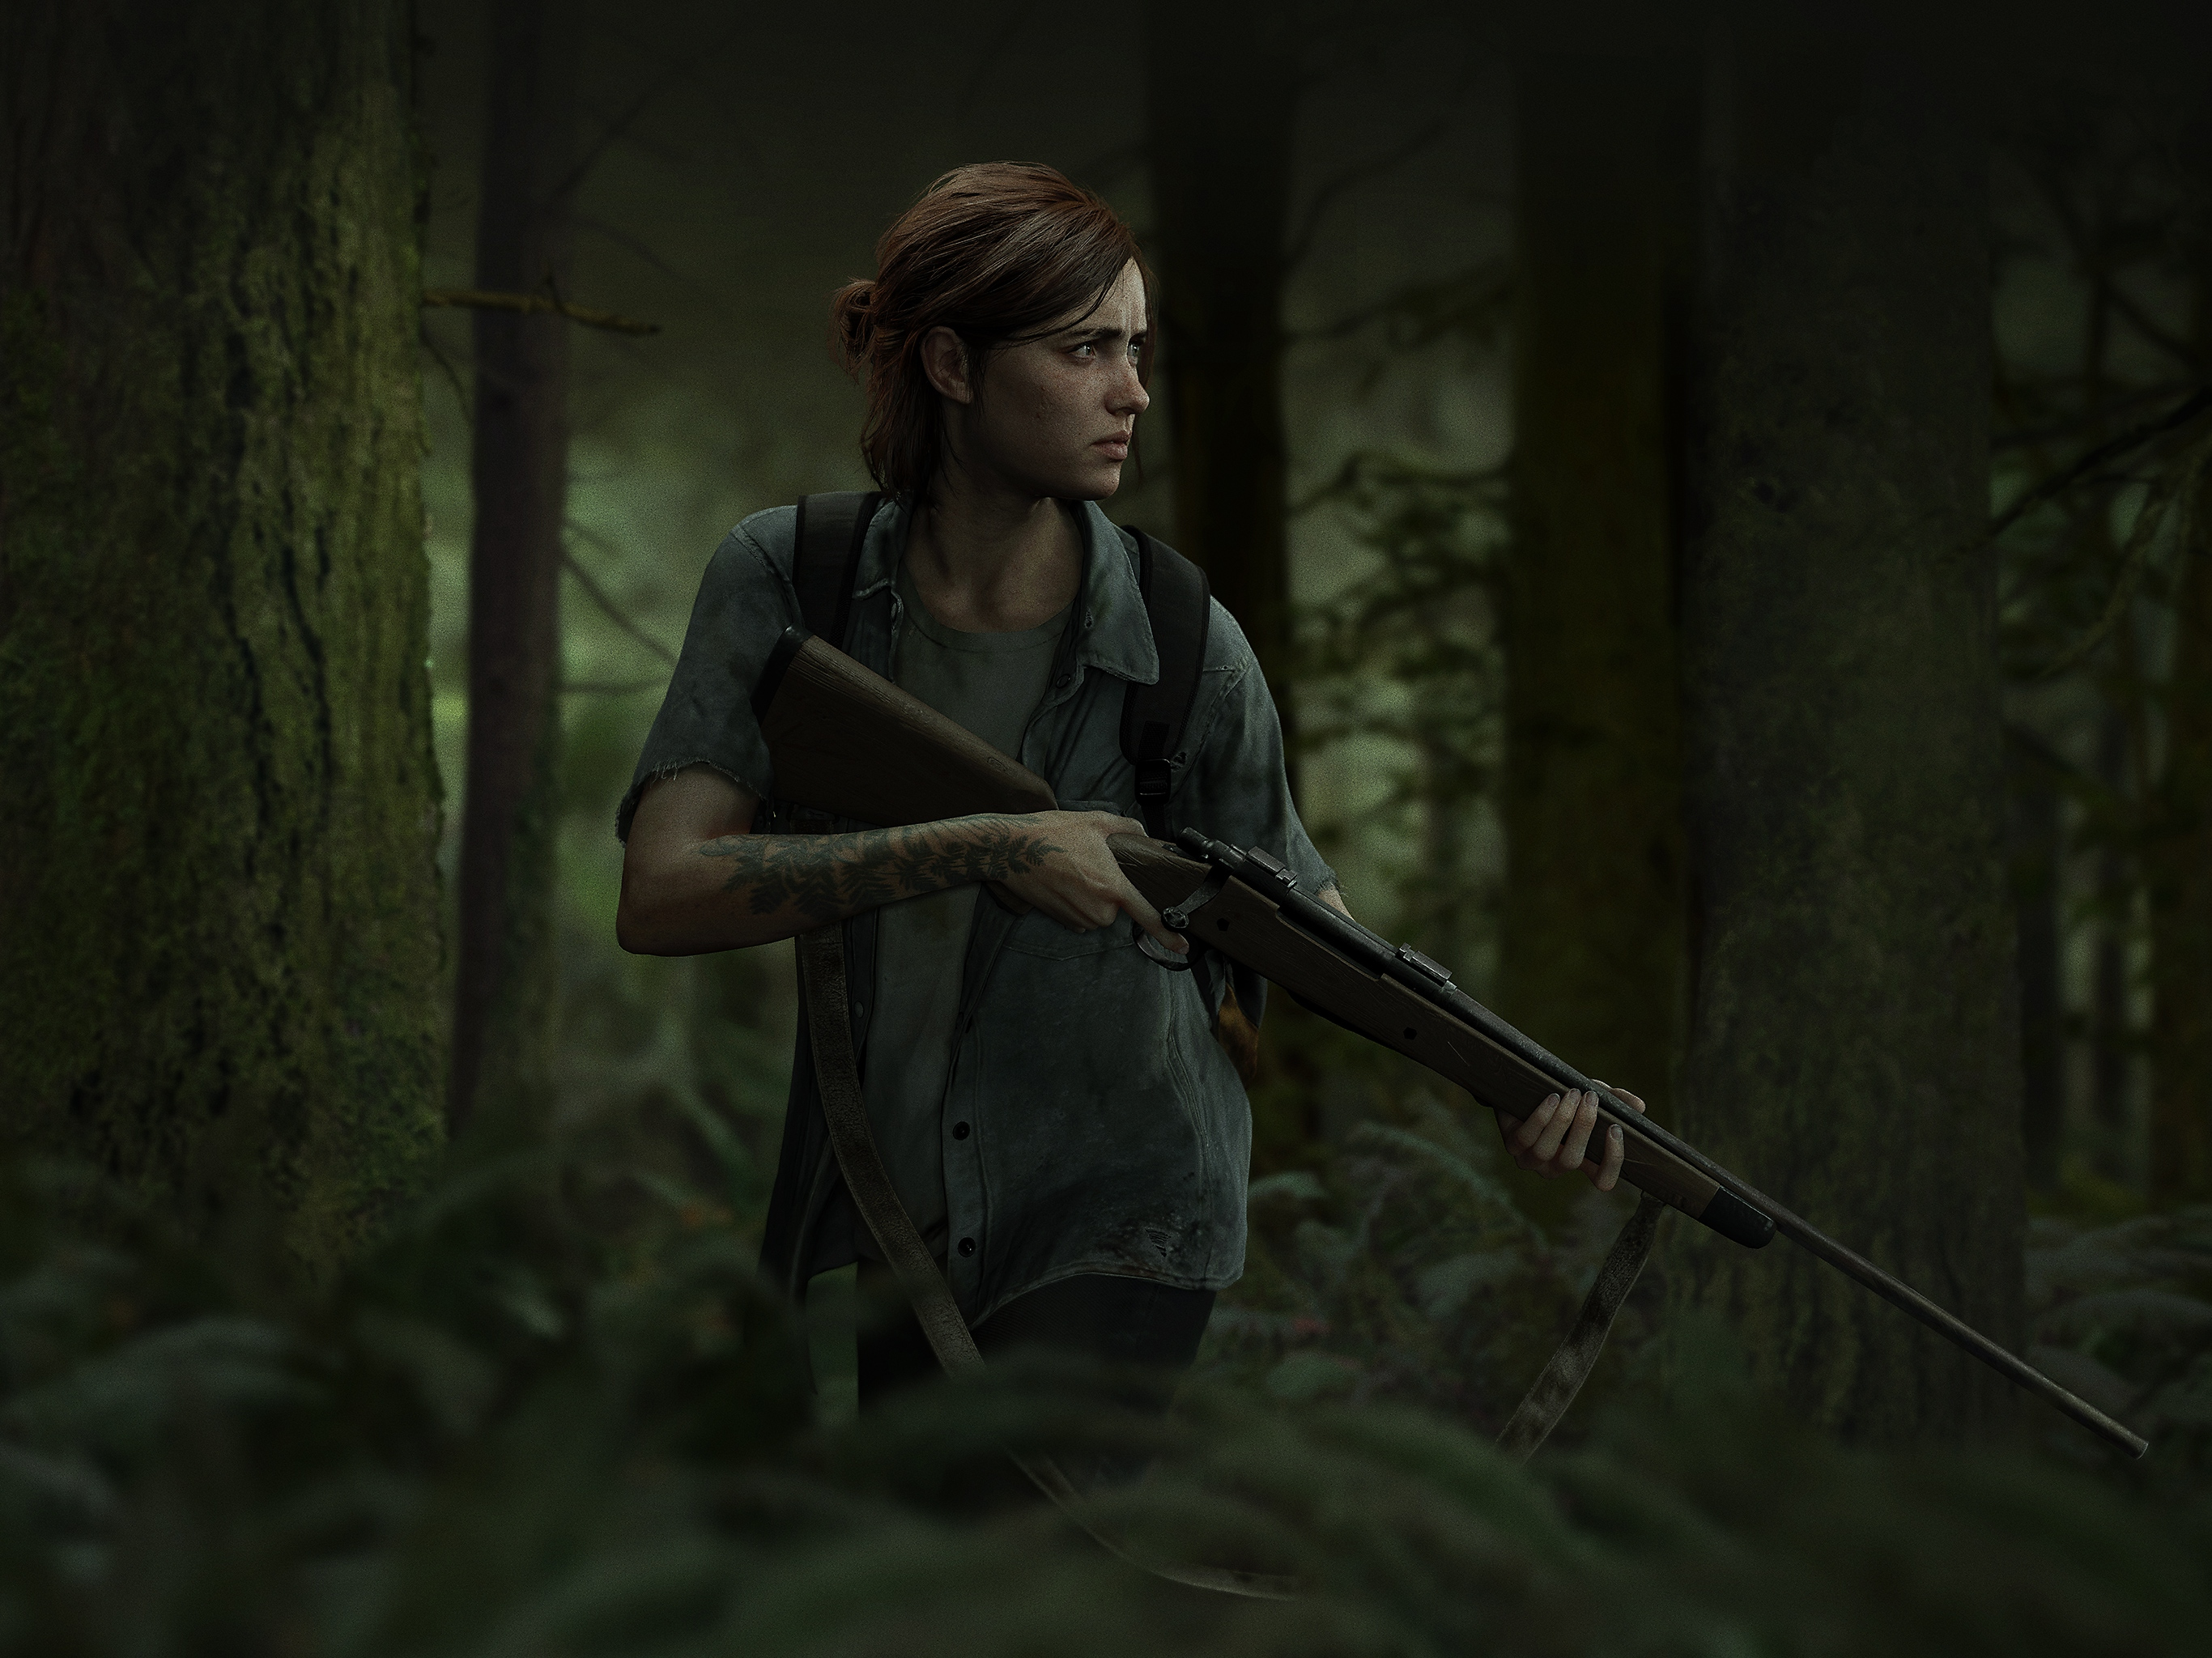 The Last of Us Part II El día del brote 2018 - iPad Pro